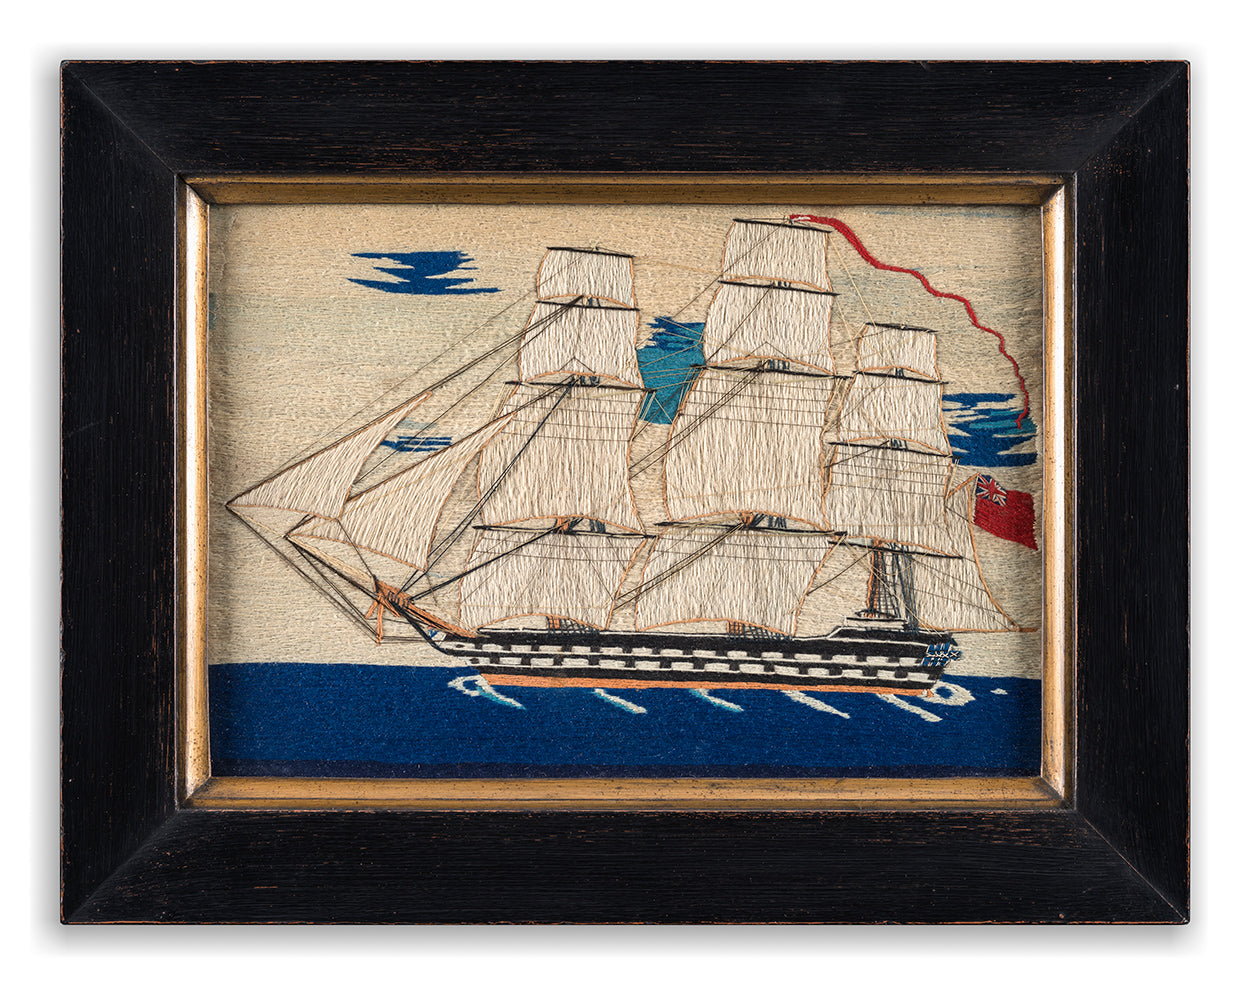 An Impressive Sailor's Primitive Wool Work Ship Portrait of a Fully Rigged Ship